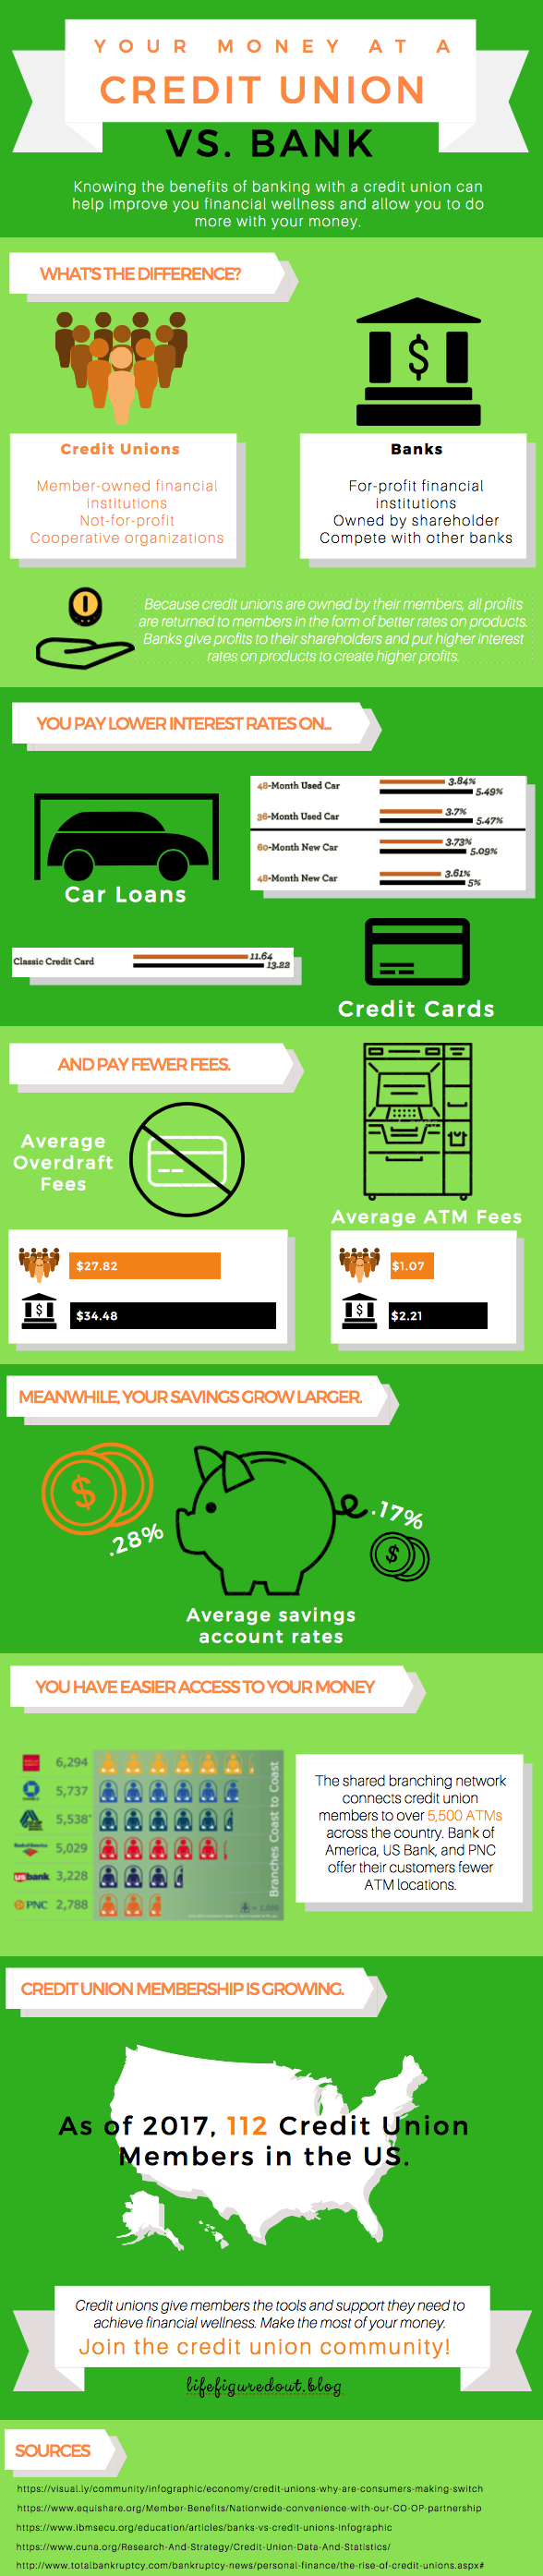 Credit Union vs. Banks Infographic